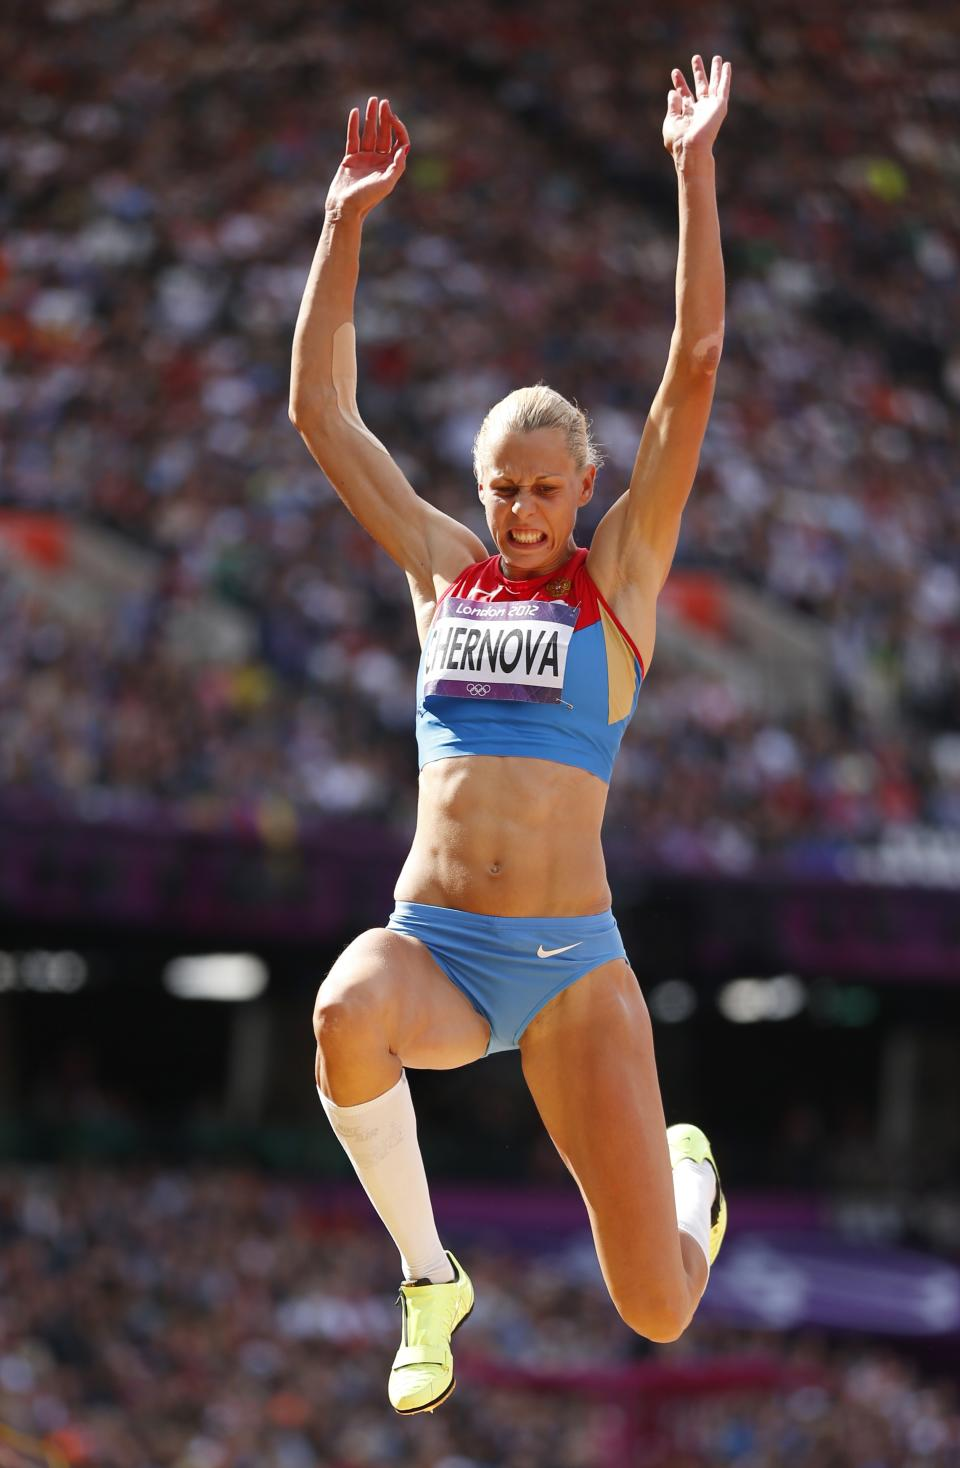 Russia's Tatyana Chernova competes in the long jump heptathlon during the athletics in the Olympic Stadium at the 2012 Summer Olympics, London, Saturday, Aug. 4, 2012. (AP Photo/Matt Dunham)